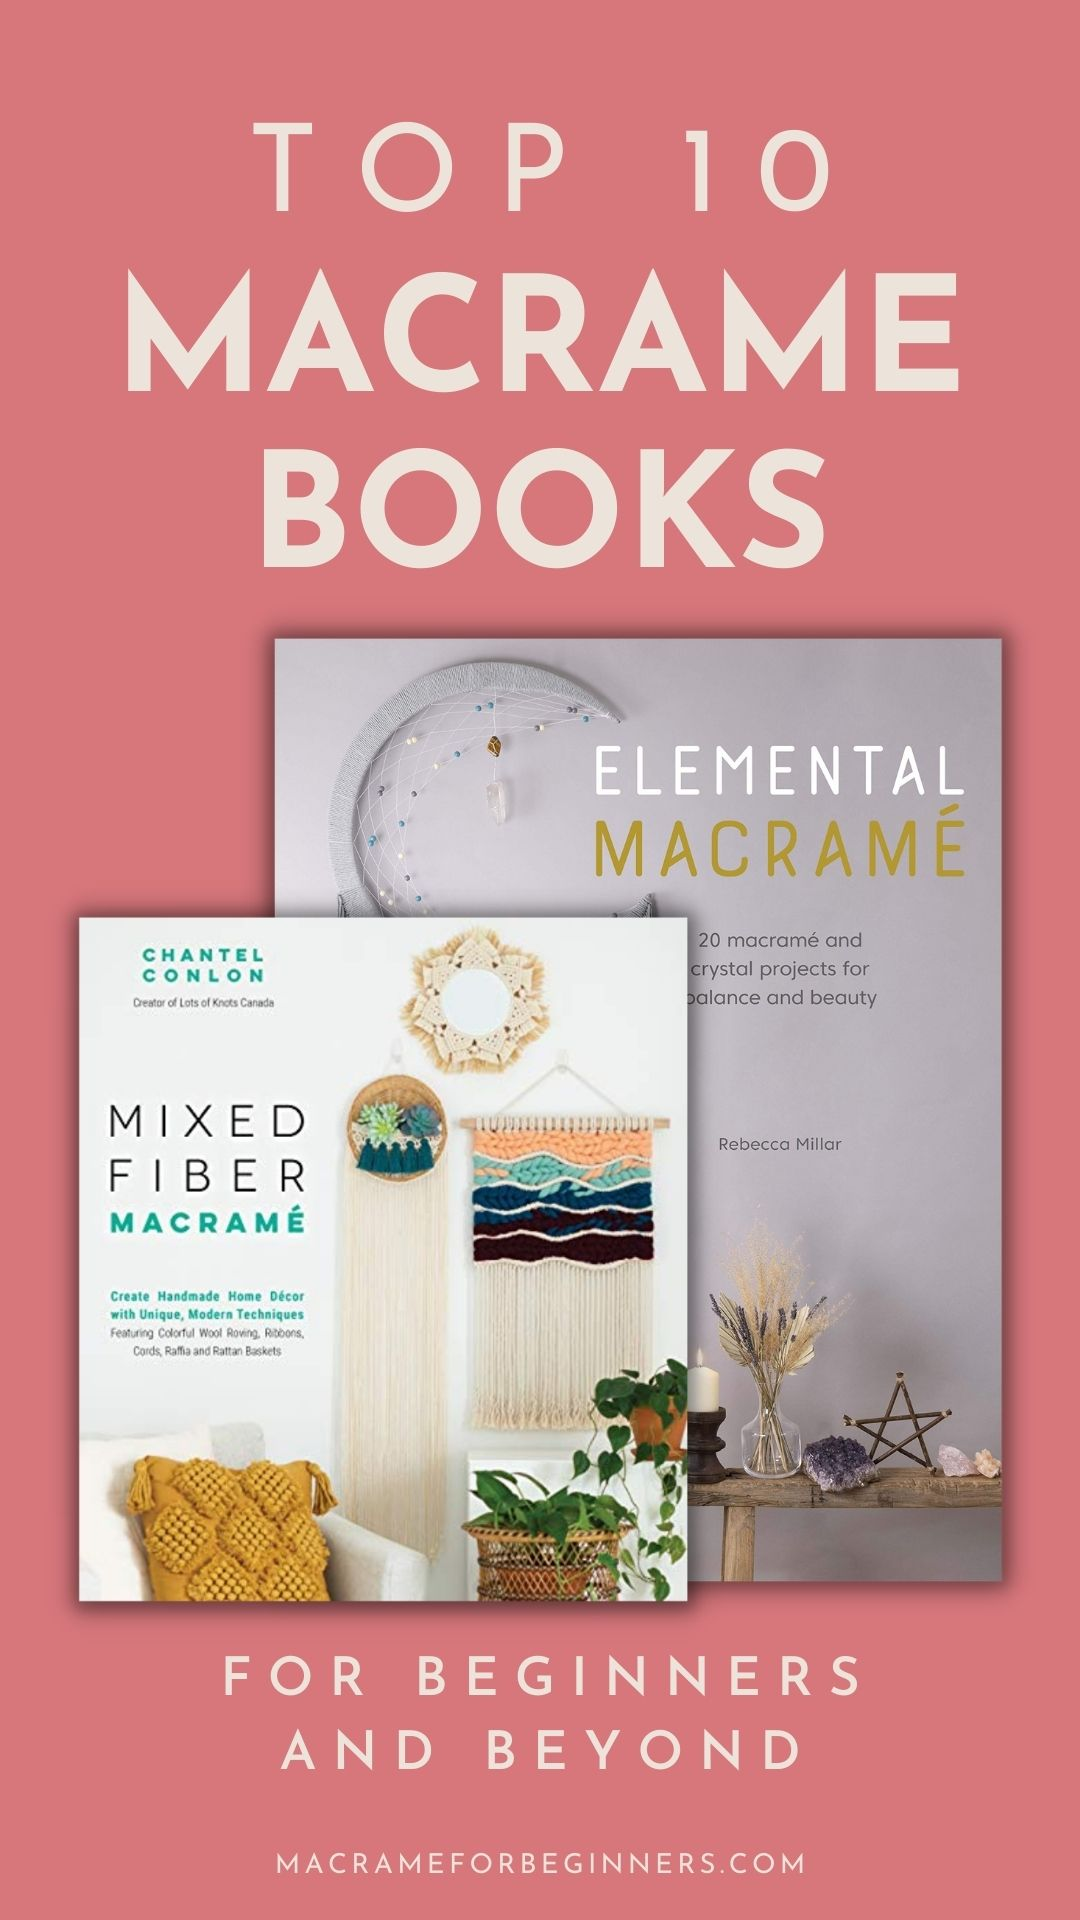 Best Macrame Books for Beginners and Beyond - Macrame for Beginners